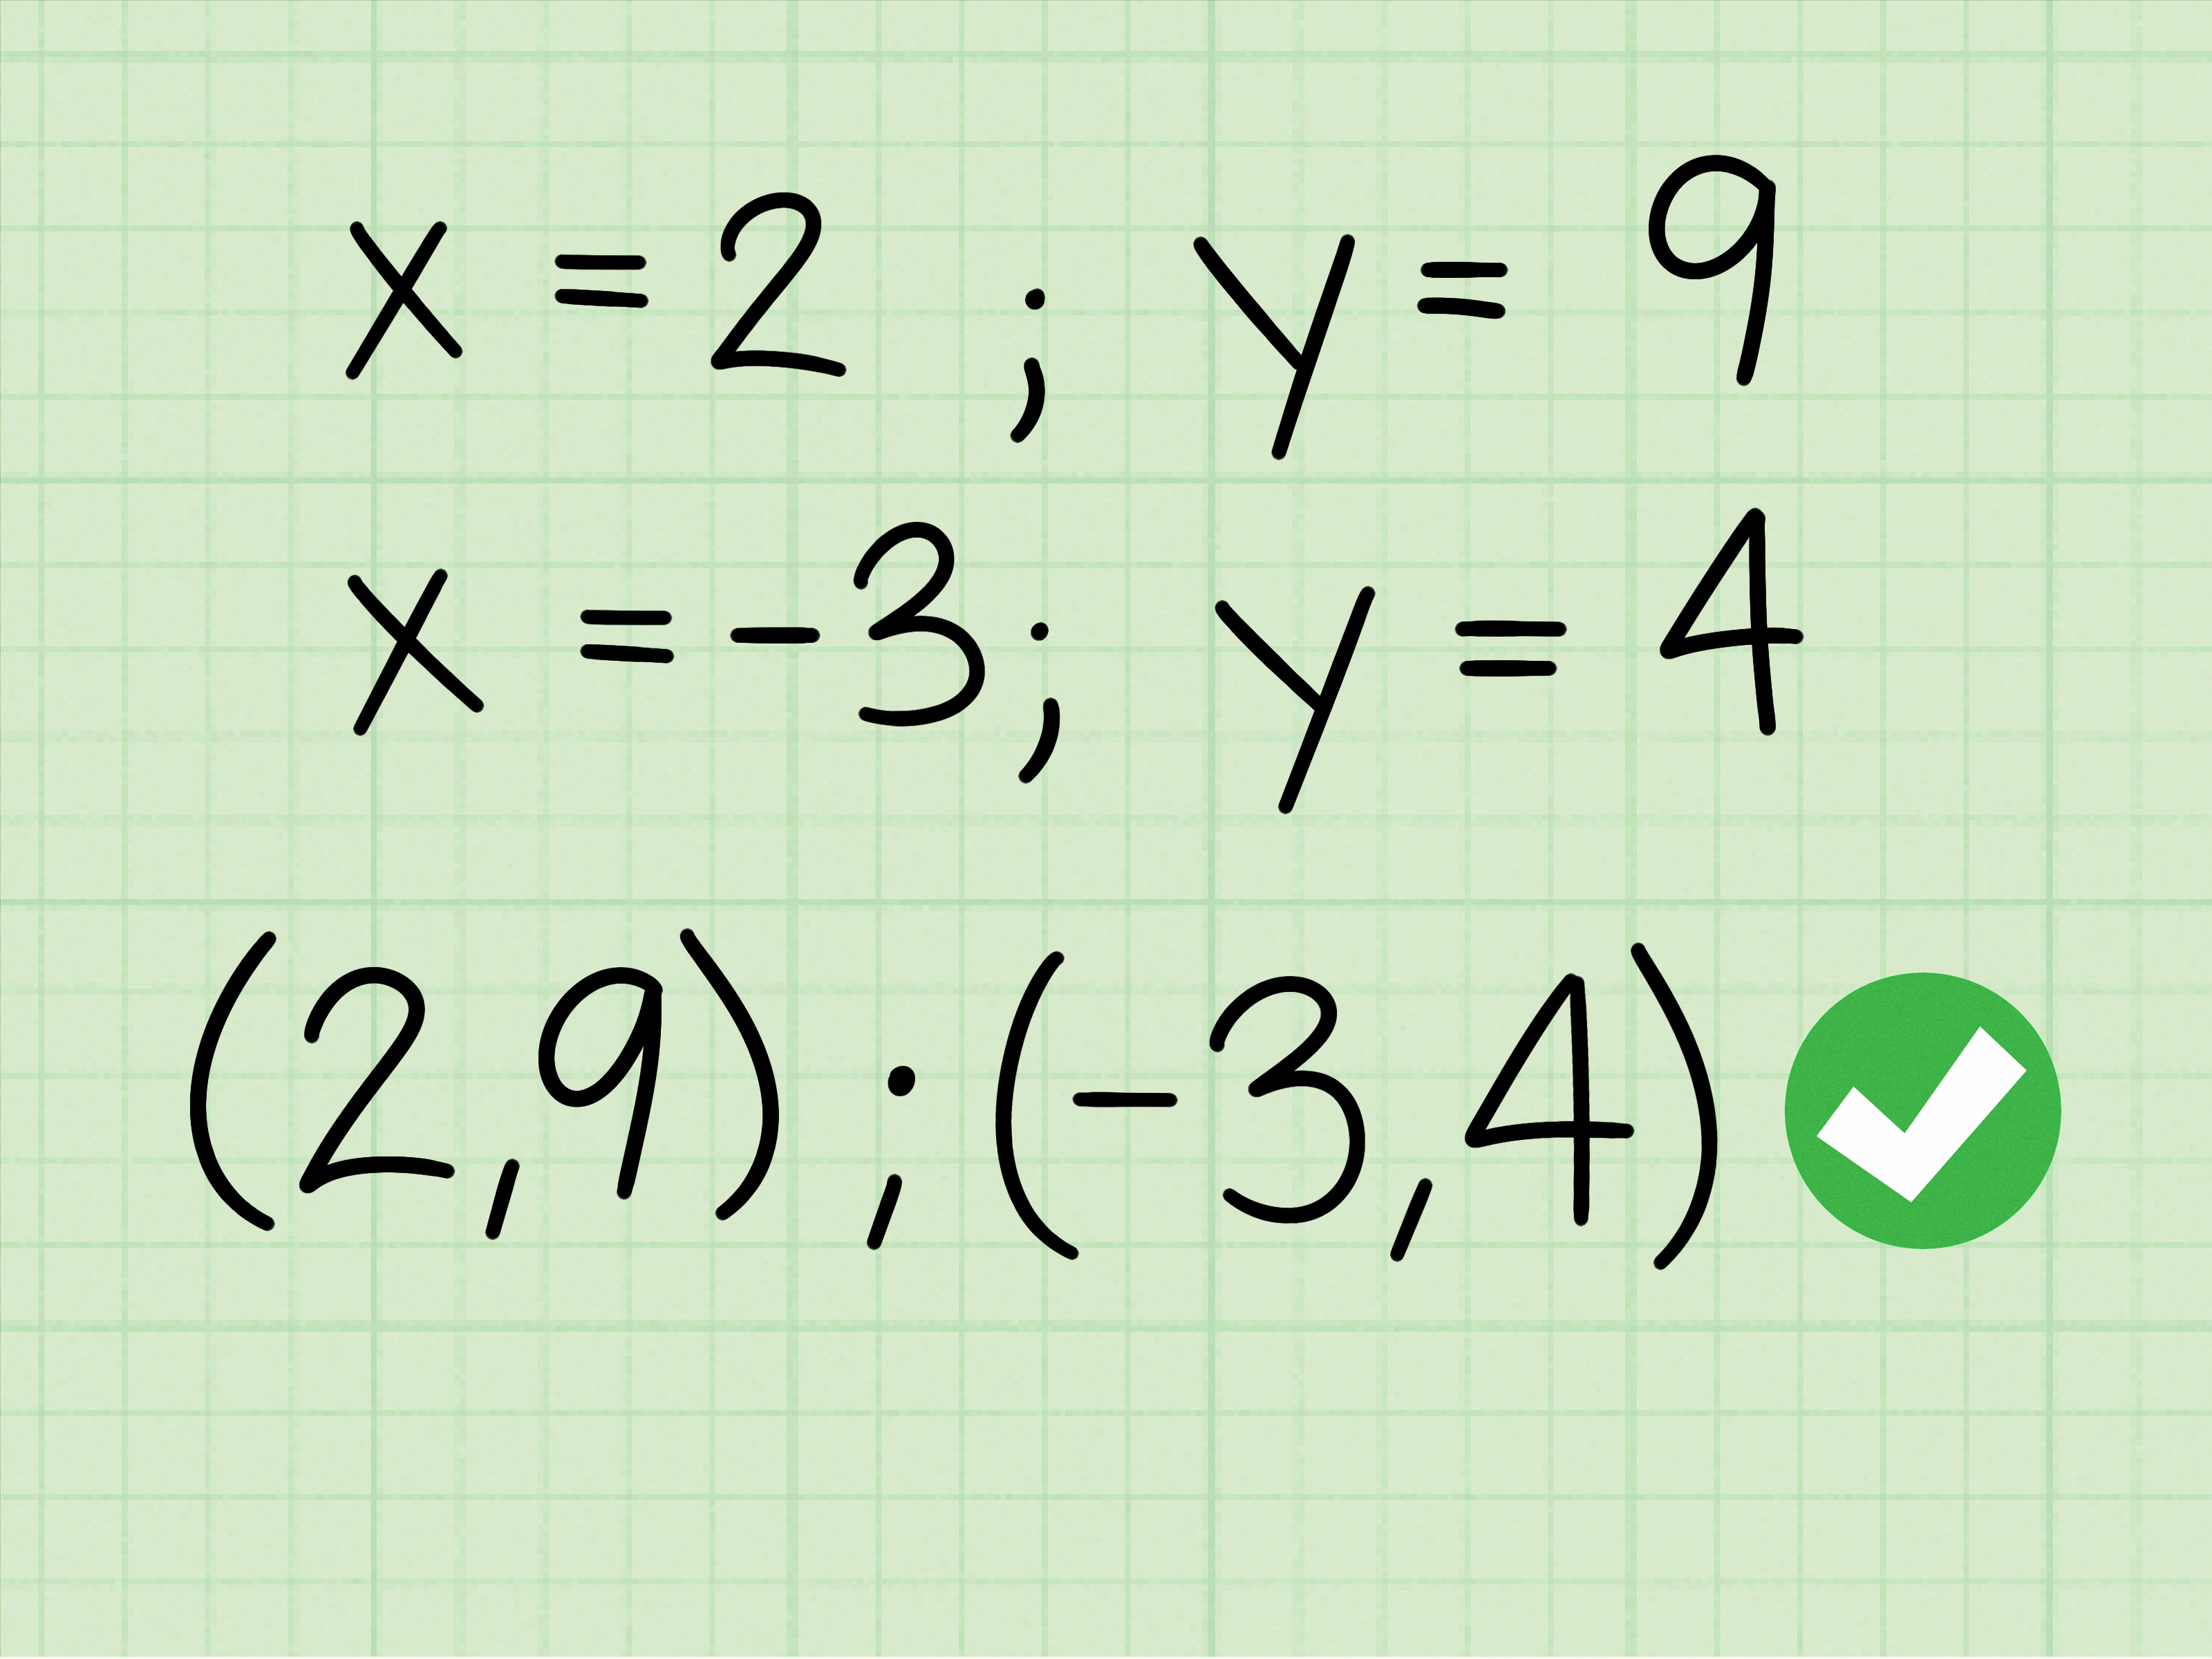 How To Find A Quadratic Equation Given 2 Points